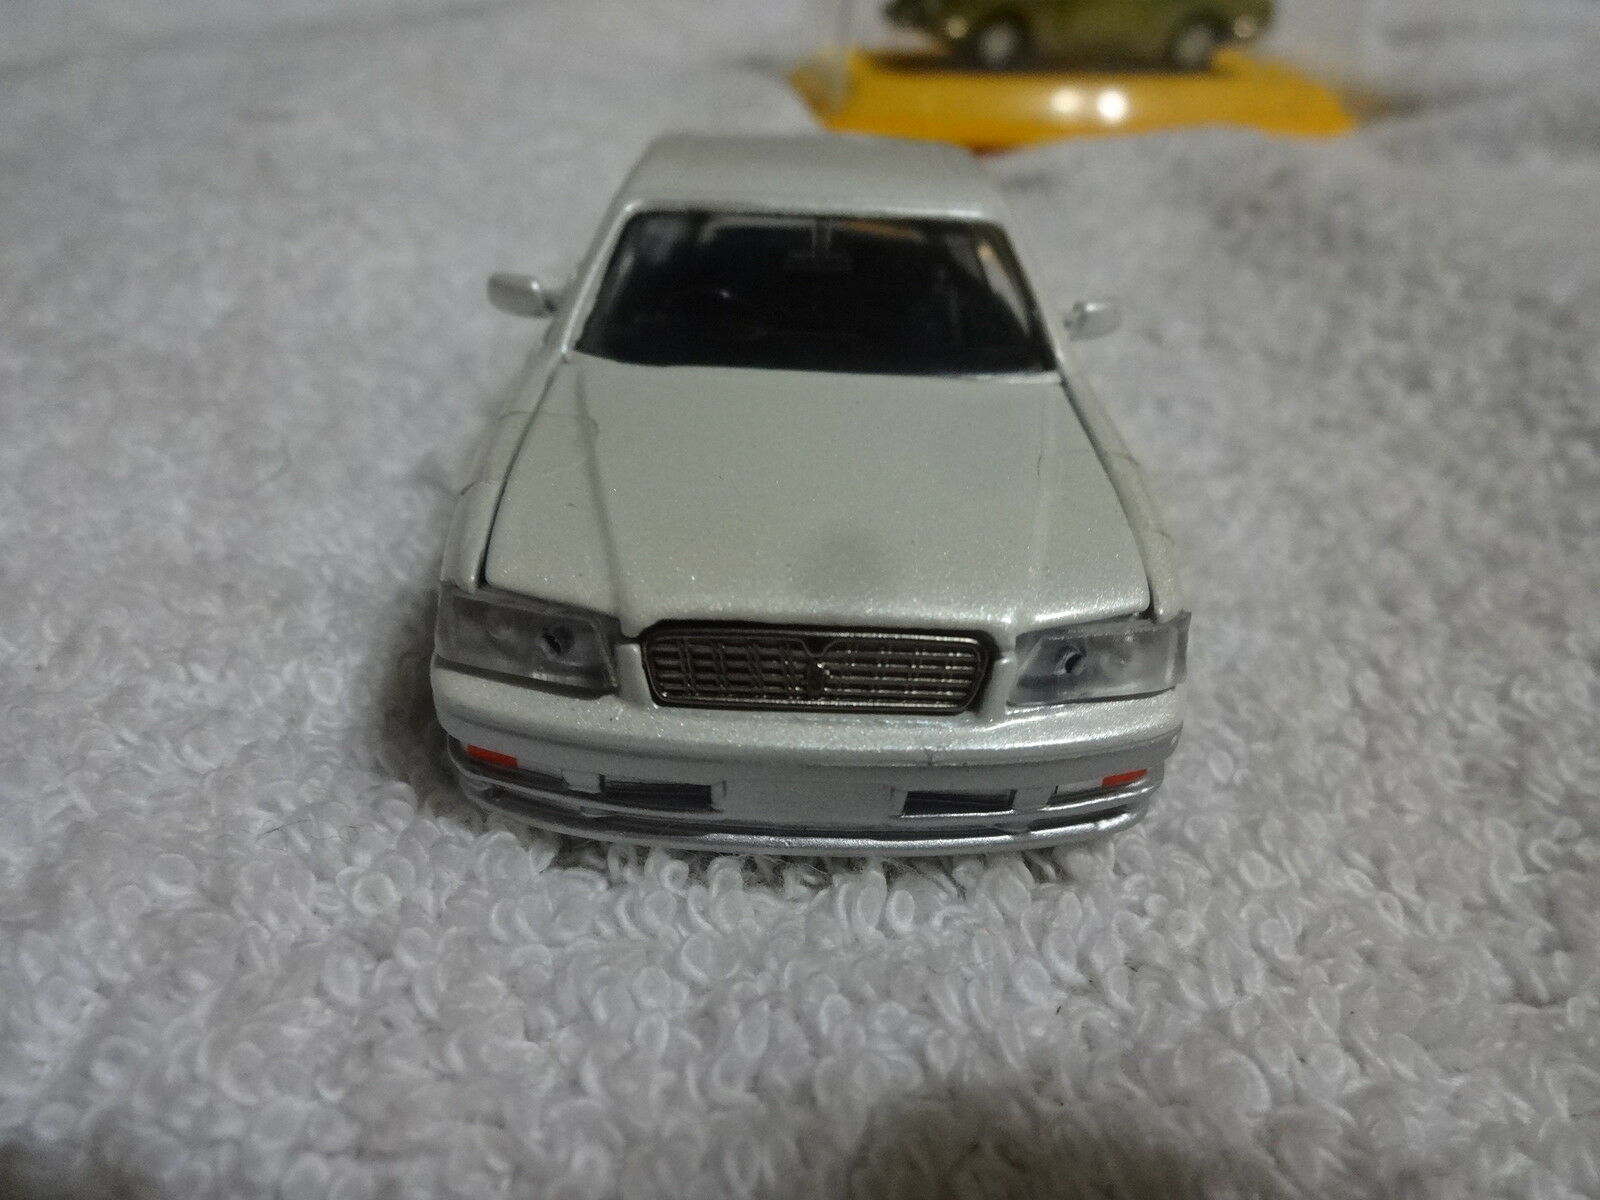 Nissan Cedric 1 43 scale by Mtech Made in Japan Japan Japan very near mint rare 679e10